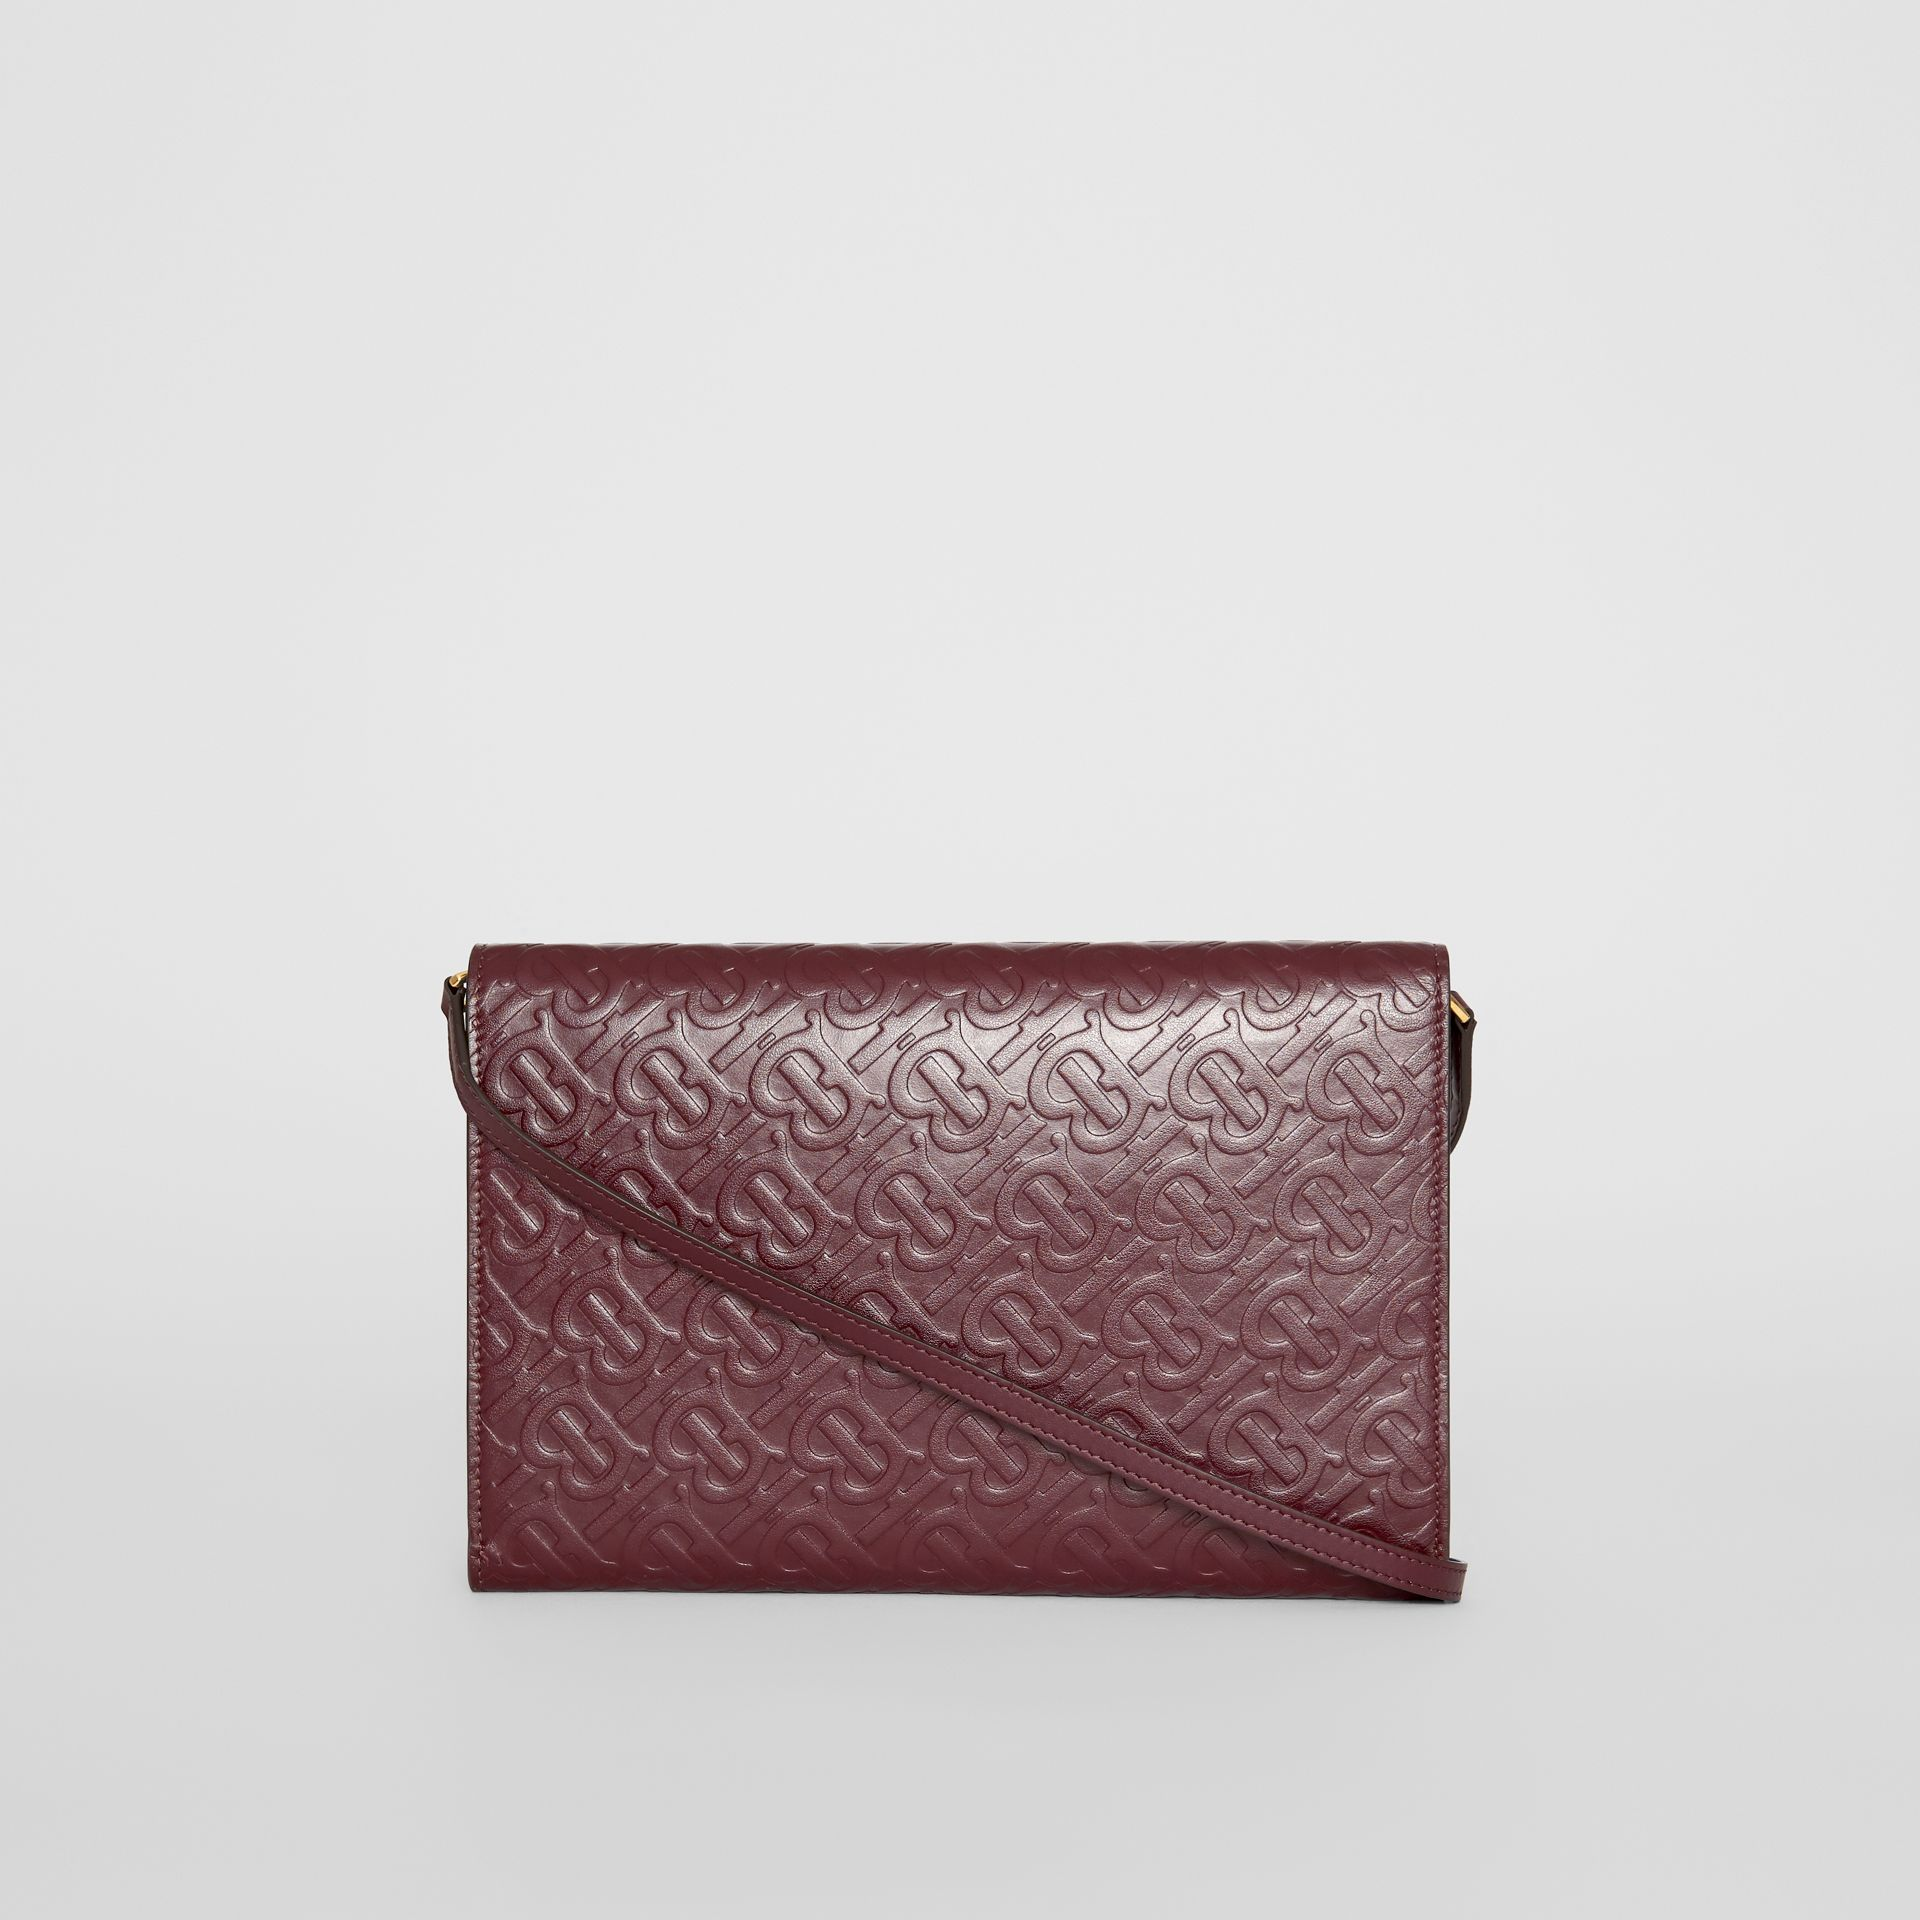 Small Monogram Leather Bag with Detachable Strap in Oxblood - Women | Burberry - gallery image 5